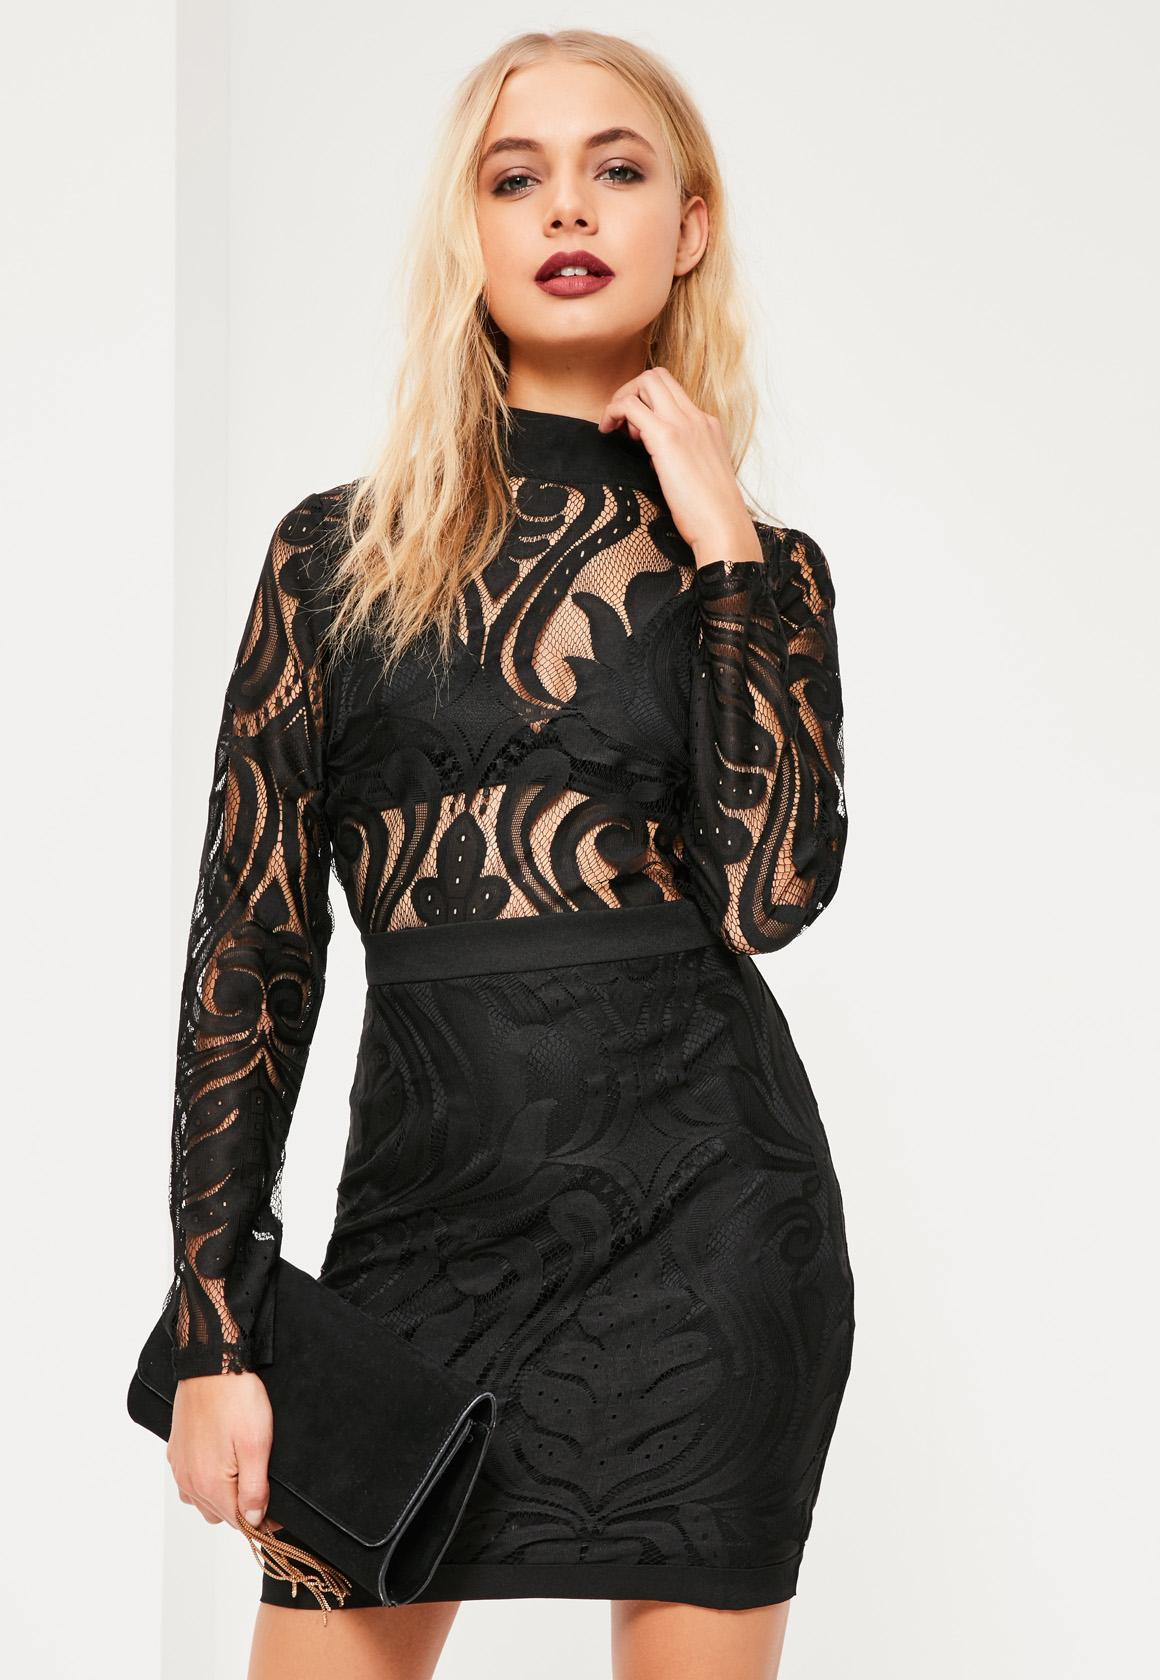 Black Lace Top Bodycon Dress